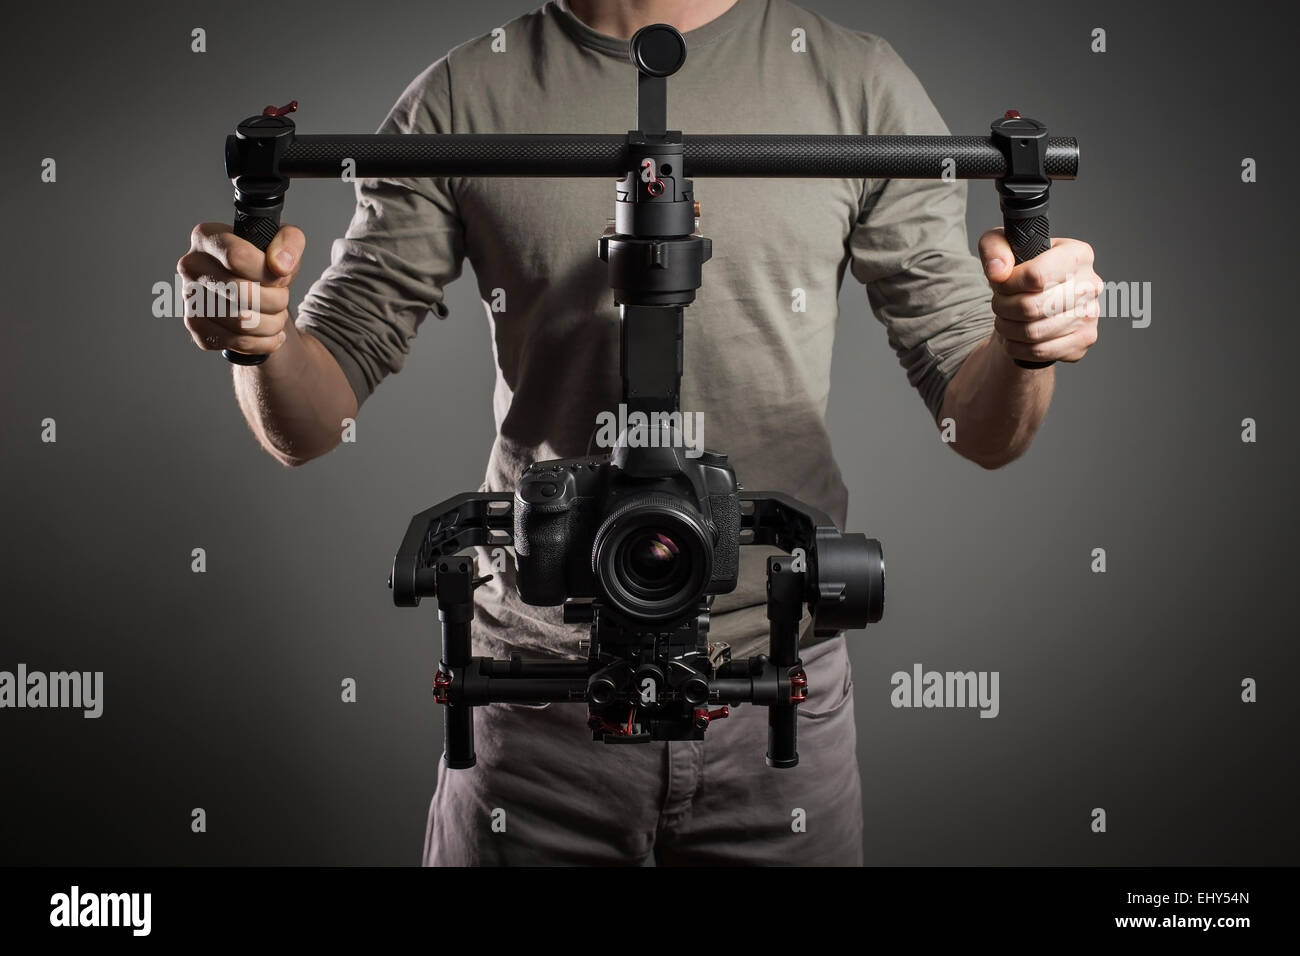 Professional videographer with gimball video slr - Stock Image